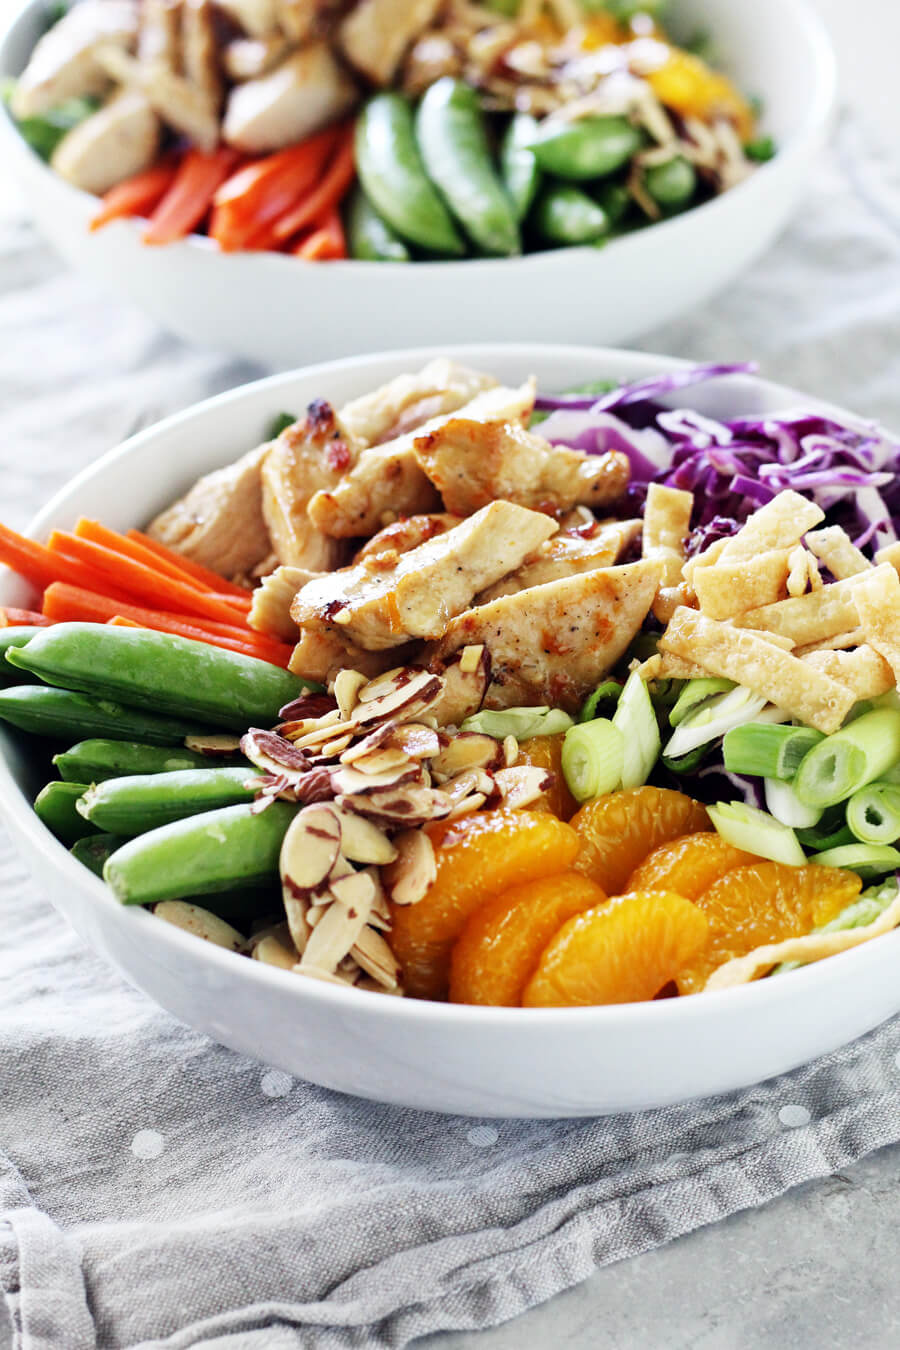 Mandarin Chinese Chicken Salad with fresh sugar snap peas, carrots, purple cabbage and marinated chicken.